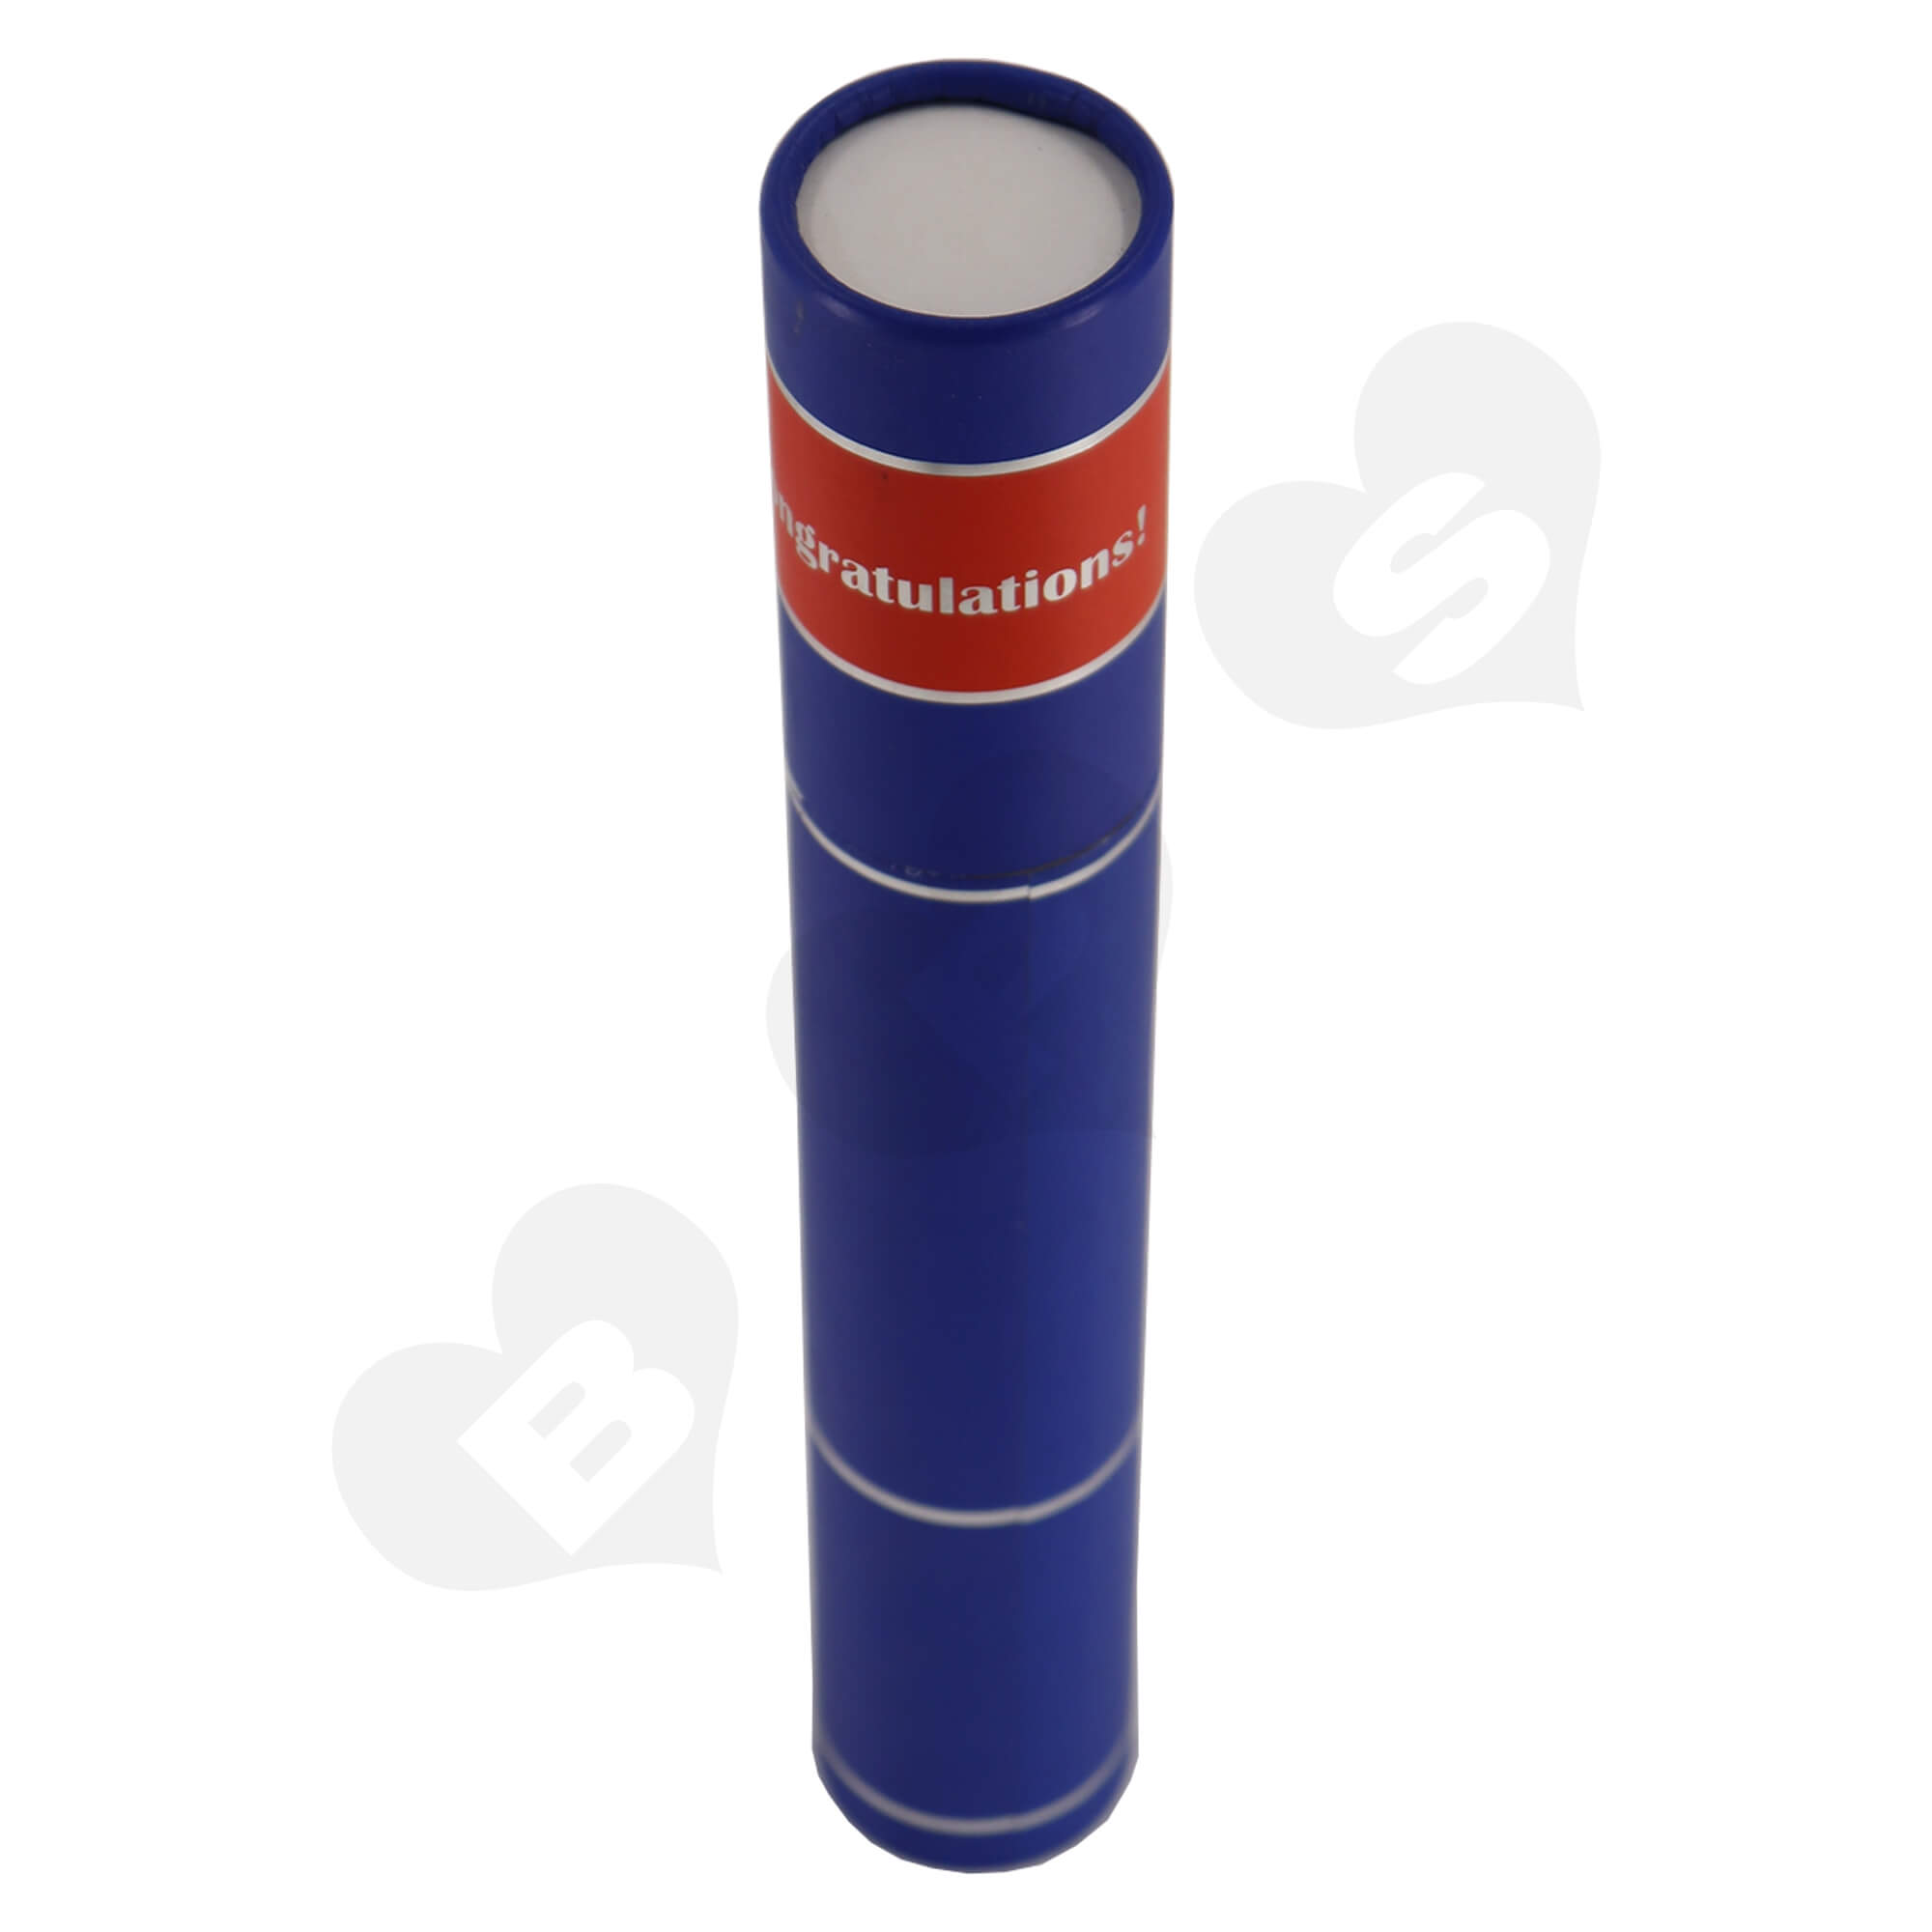 Big Size Cardboard Tube For Packing University Congratulations Gifts Side View Three